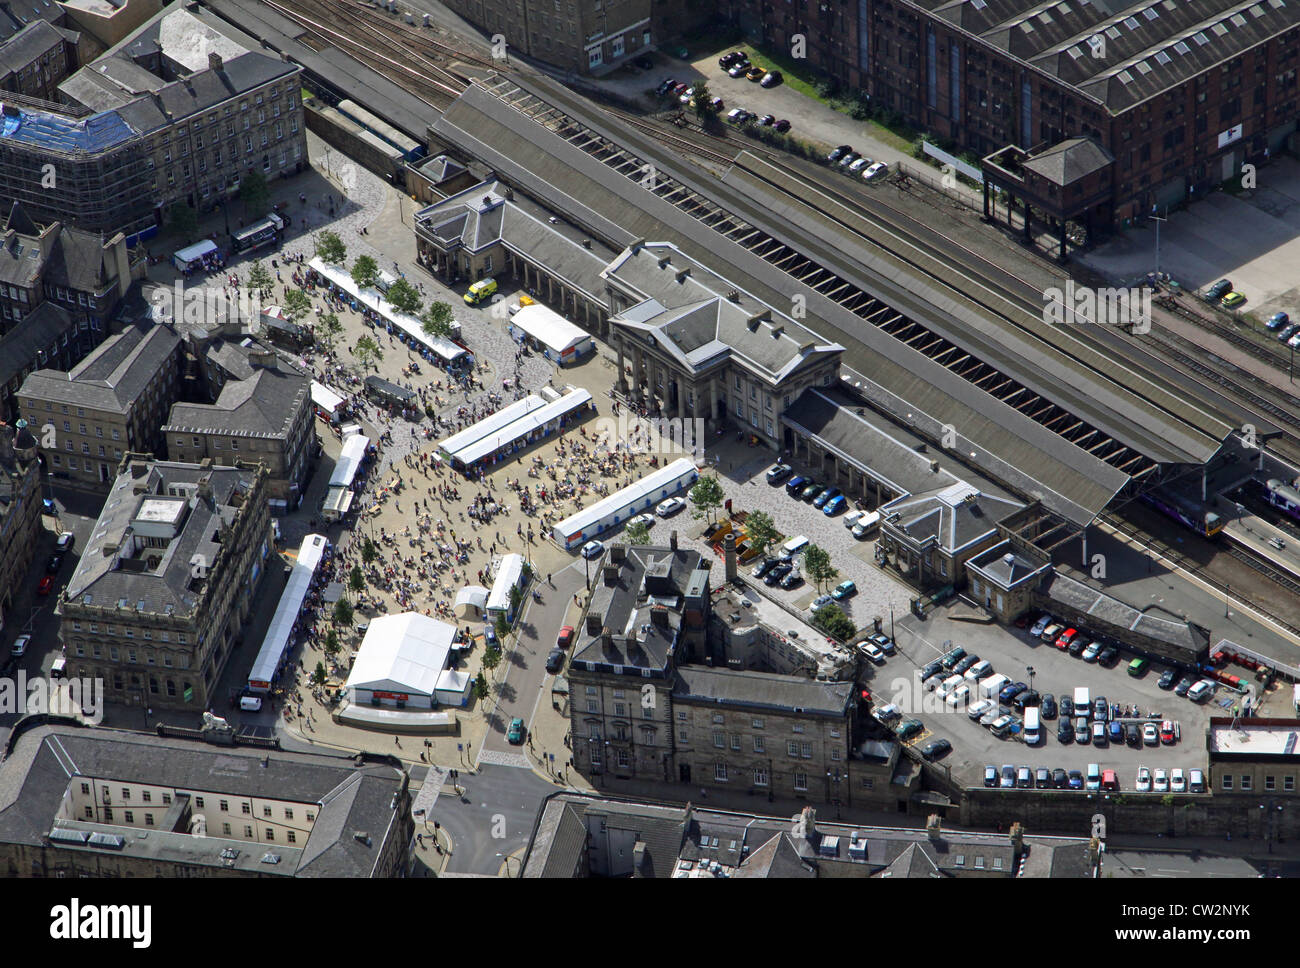 aerial view of Huddersfield railway station - Stock Image